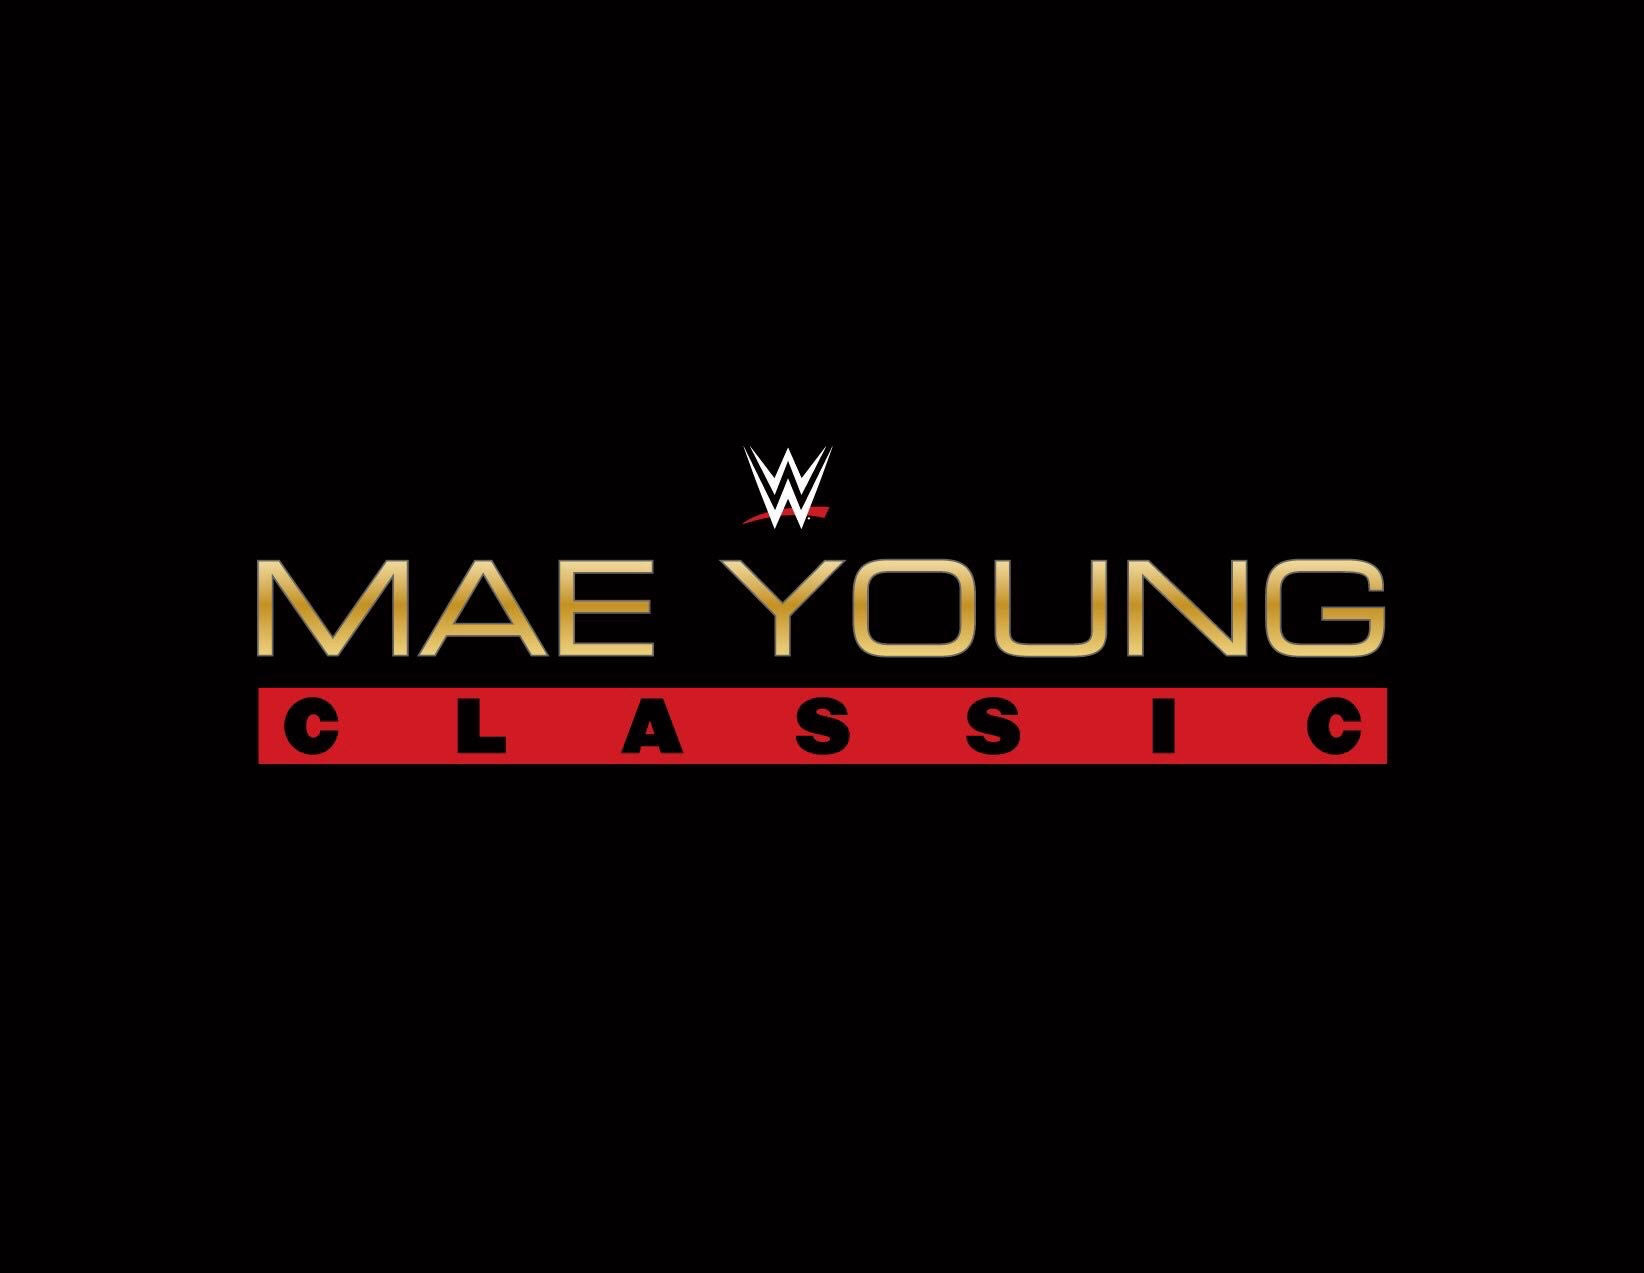 Toni Storm among first names announced for WWE Mae Young Classic